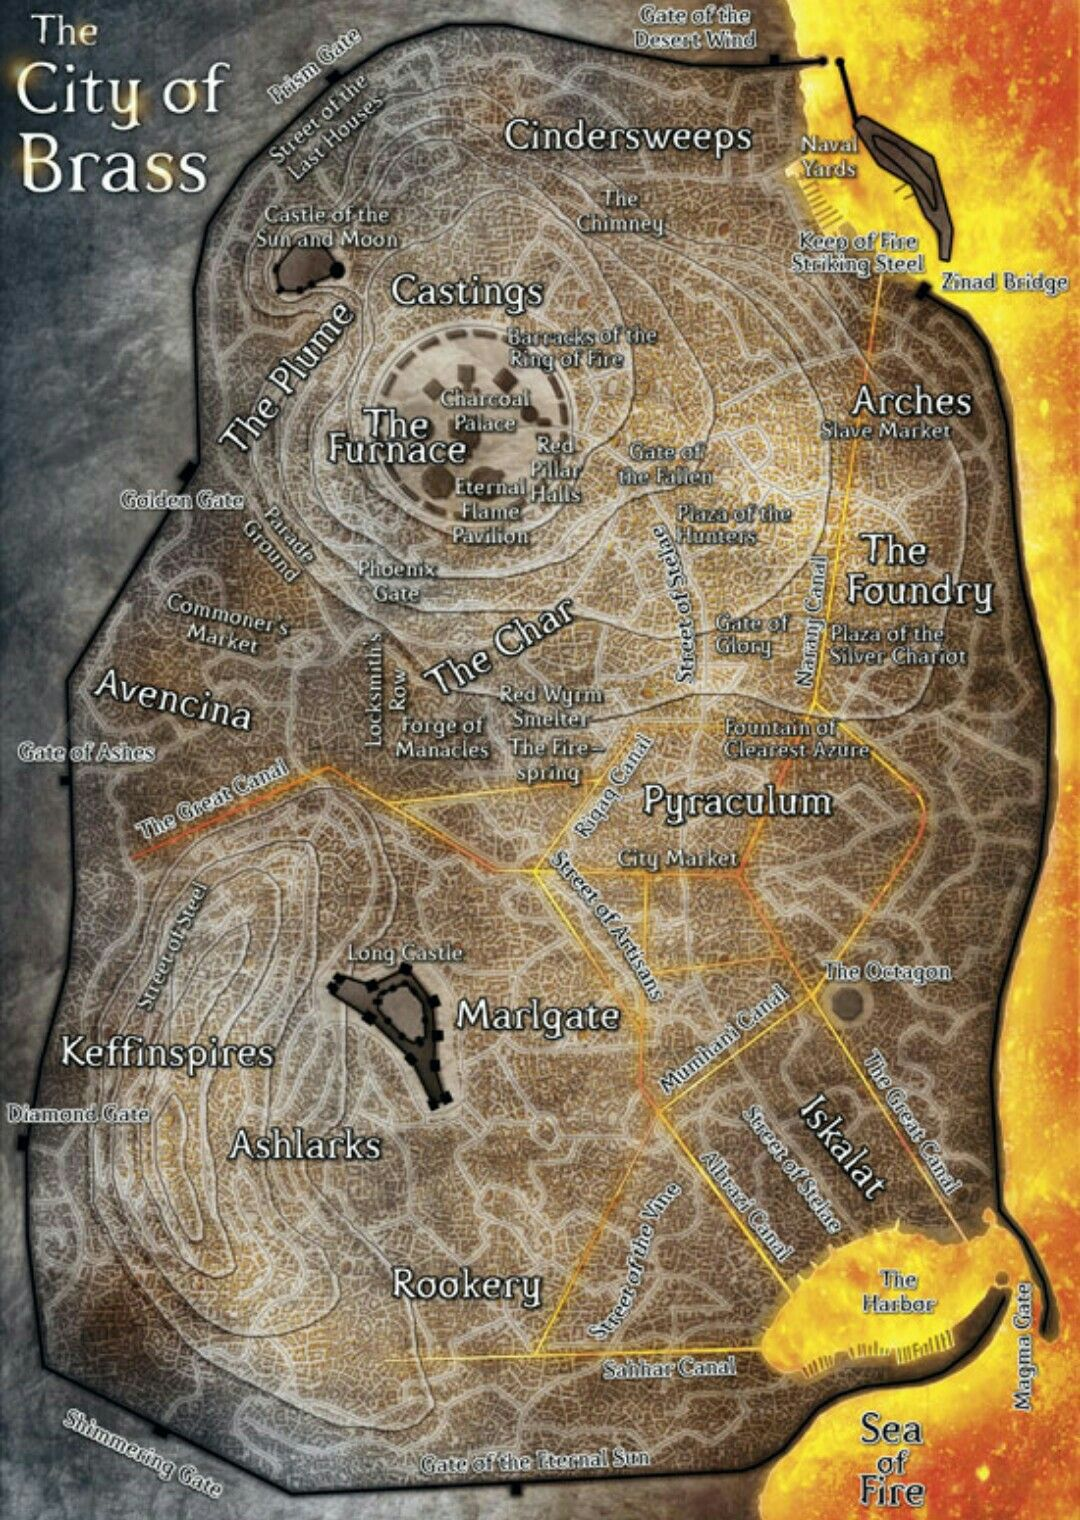 Map - The City of Brass   D&D   Pinterest   RPG, Fantasy map and ...